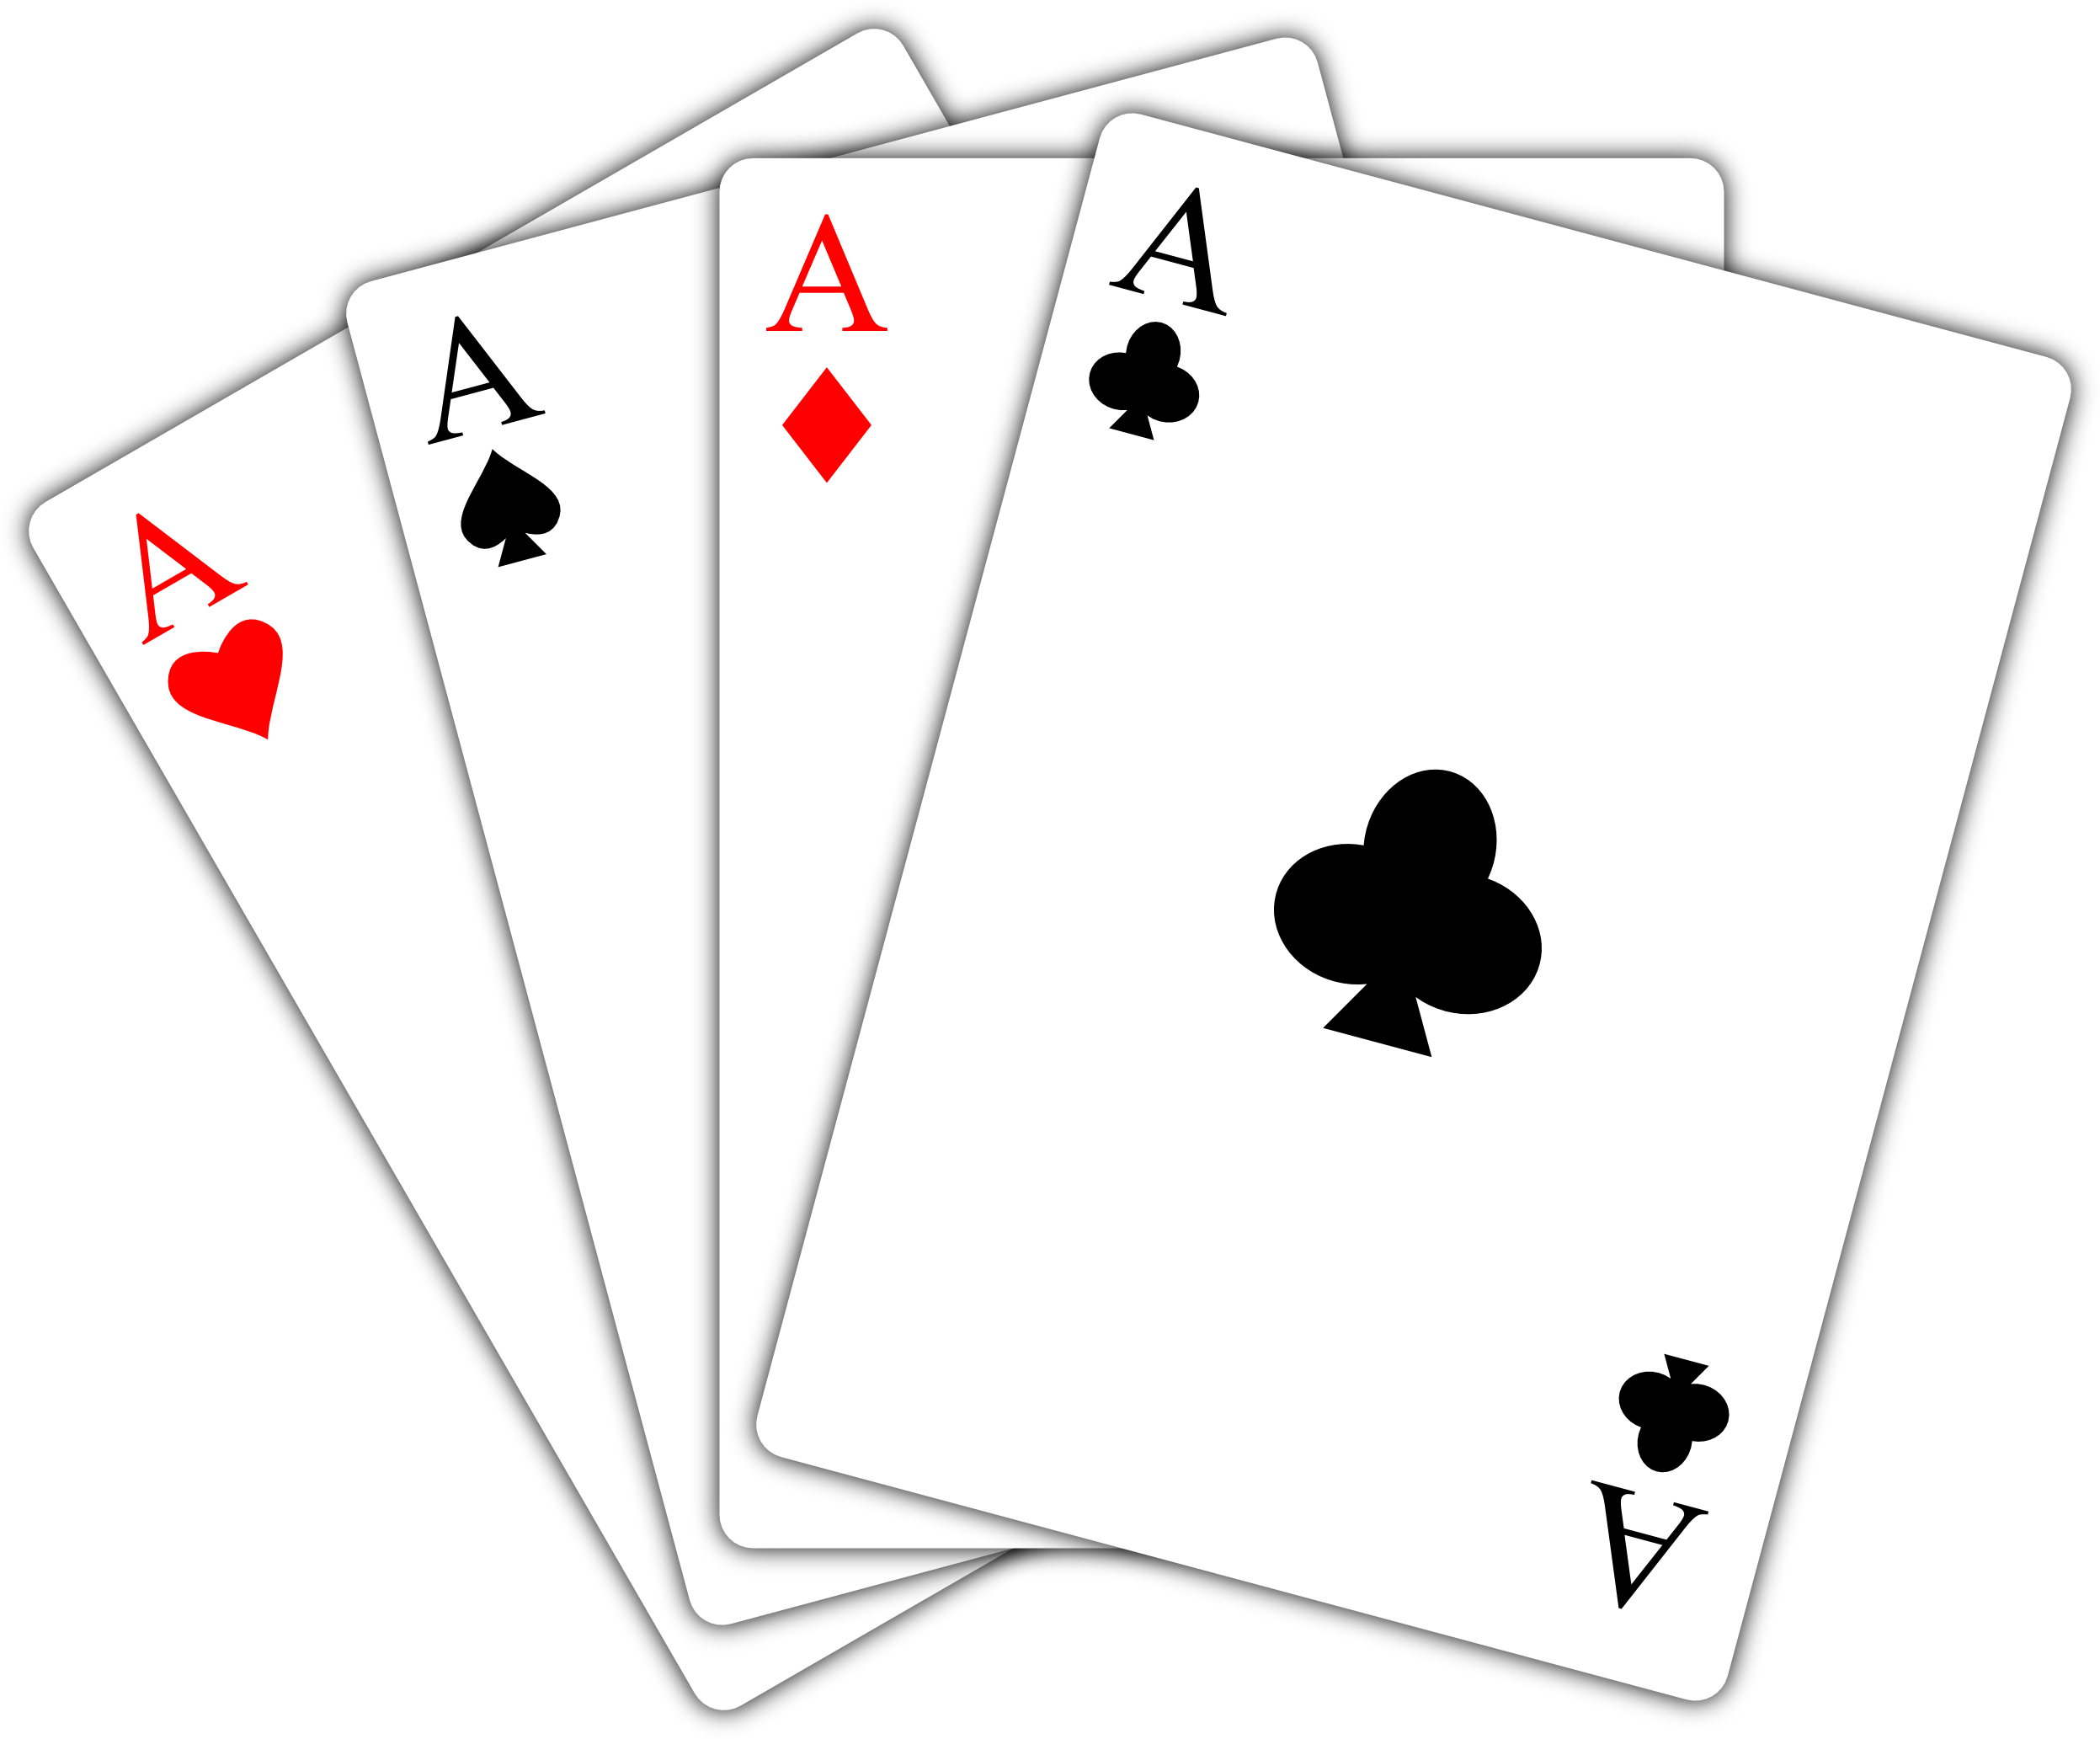 Blank playing cards png. Hd transparent images pluspng